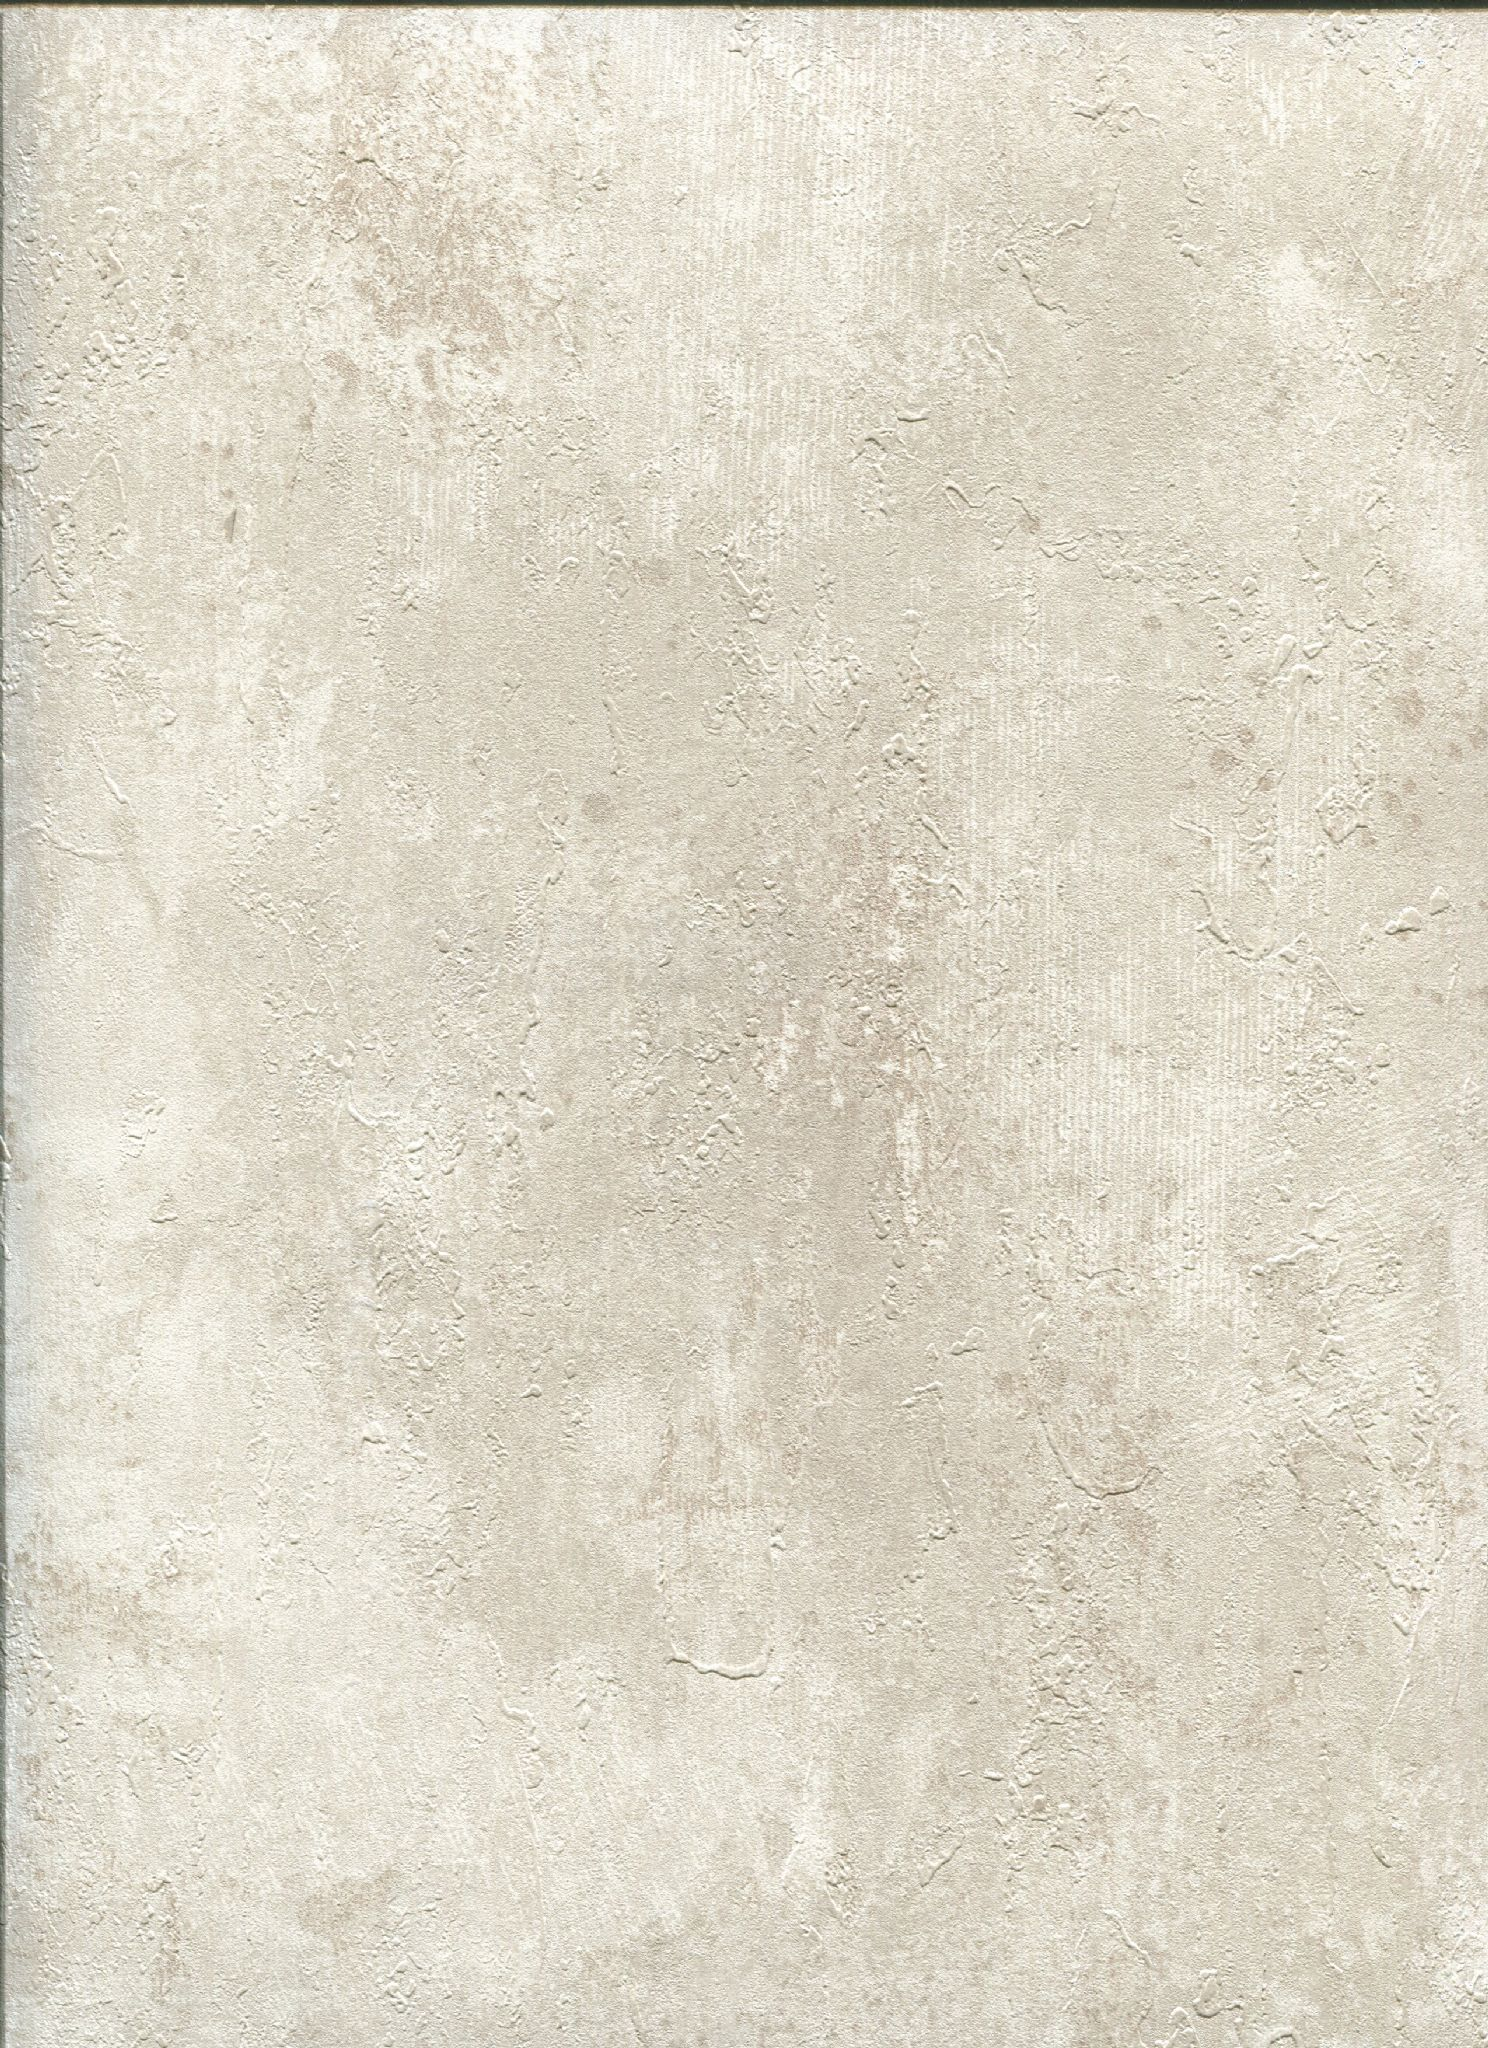 Textured Plains Wallpaper TP1011 By Grandeco For Galerie